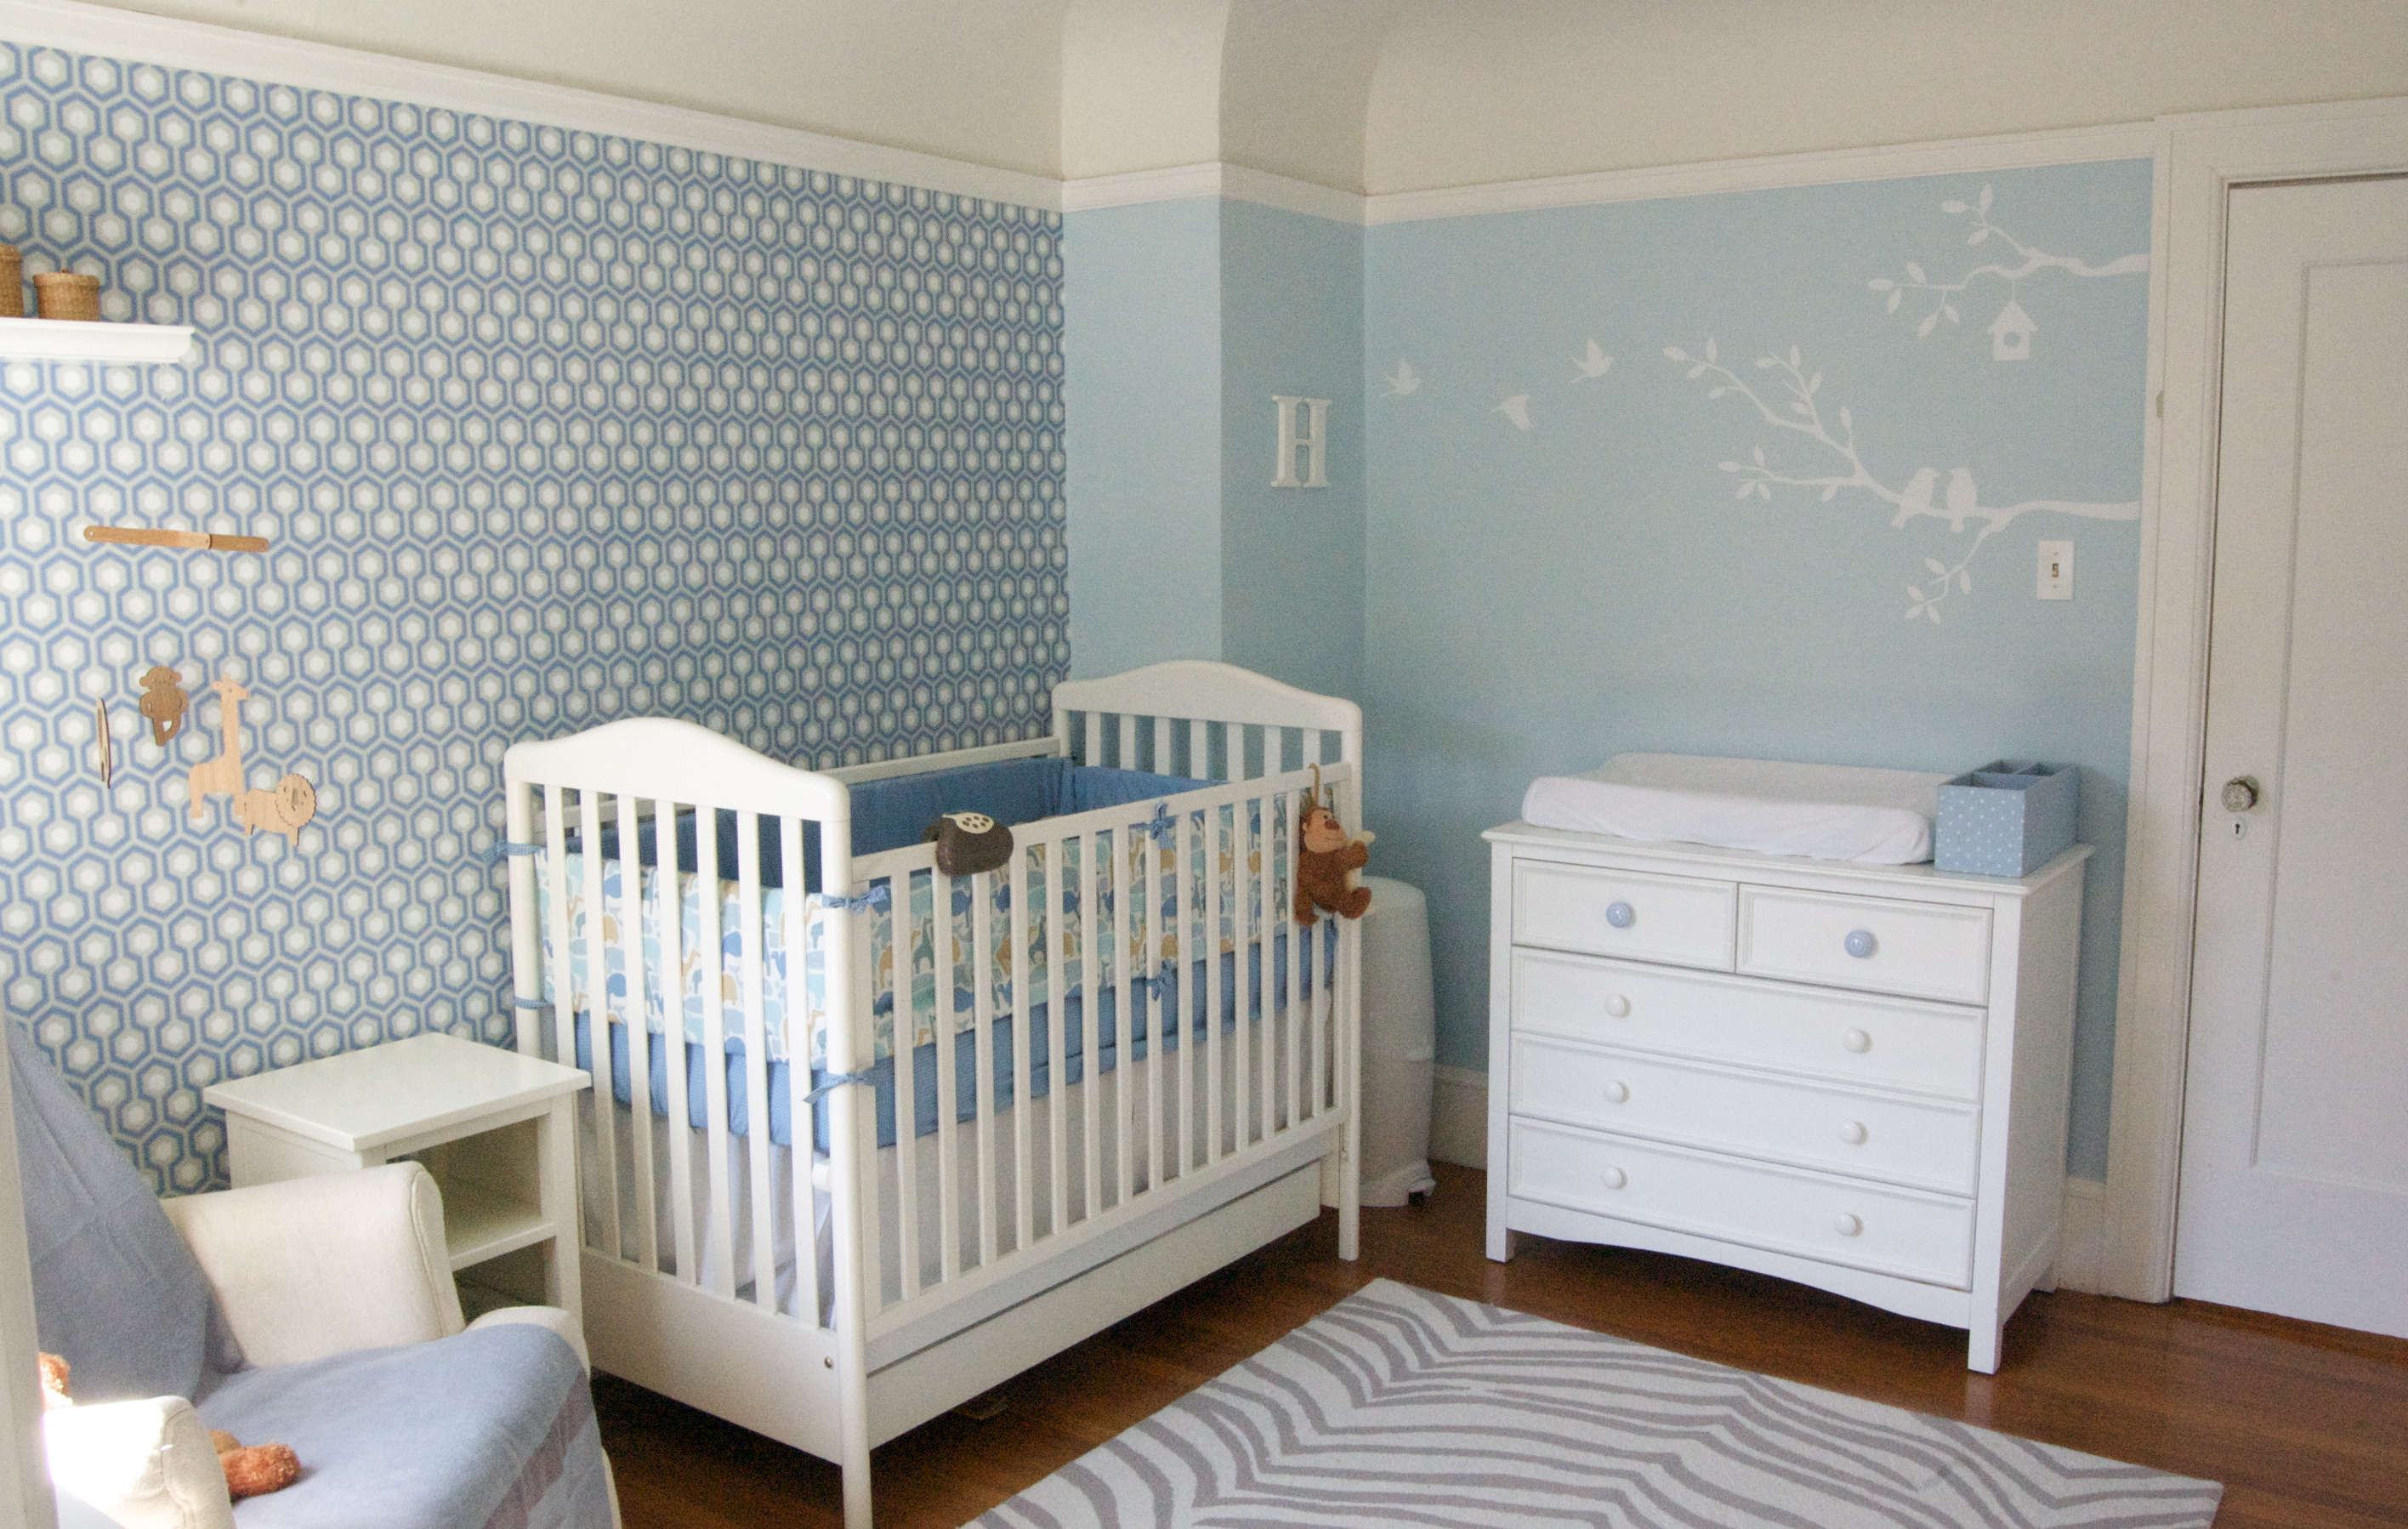 1000 images about baby room ideas on pinterest nurseries cribs and baby rooms - Room decoration for baby boy ...